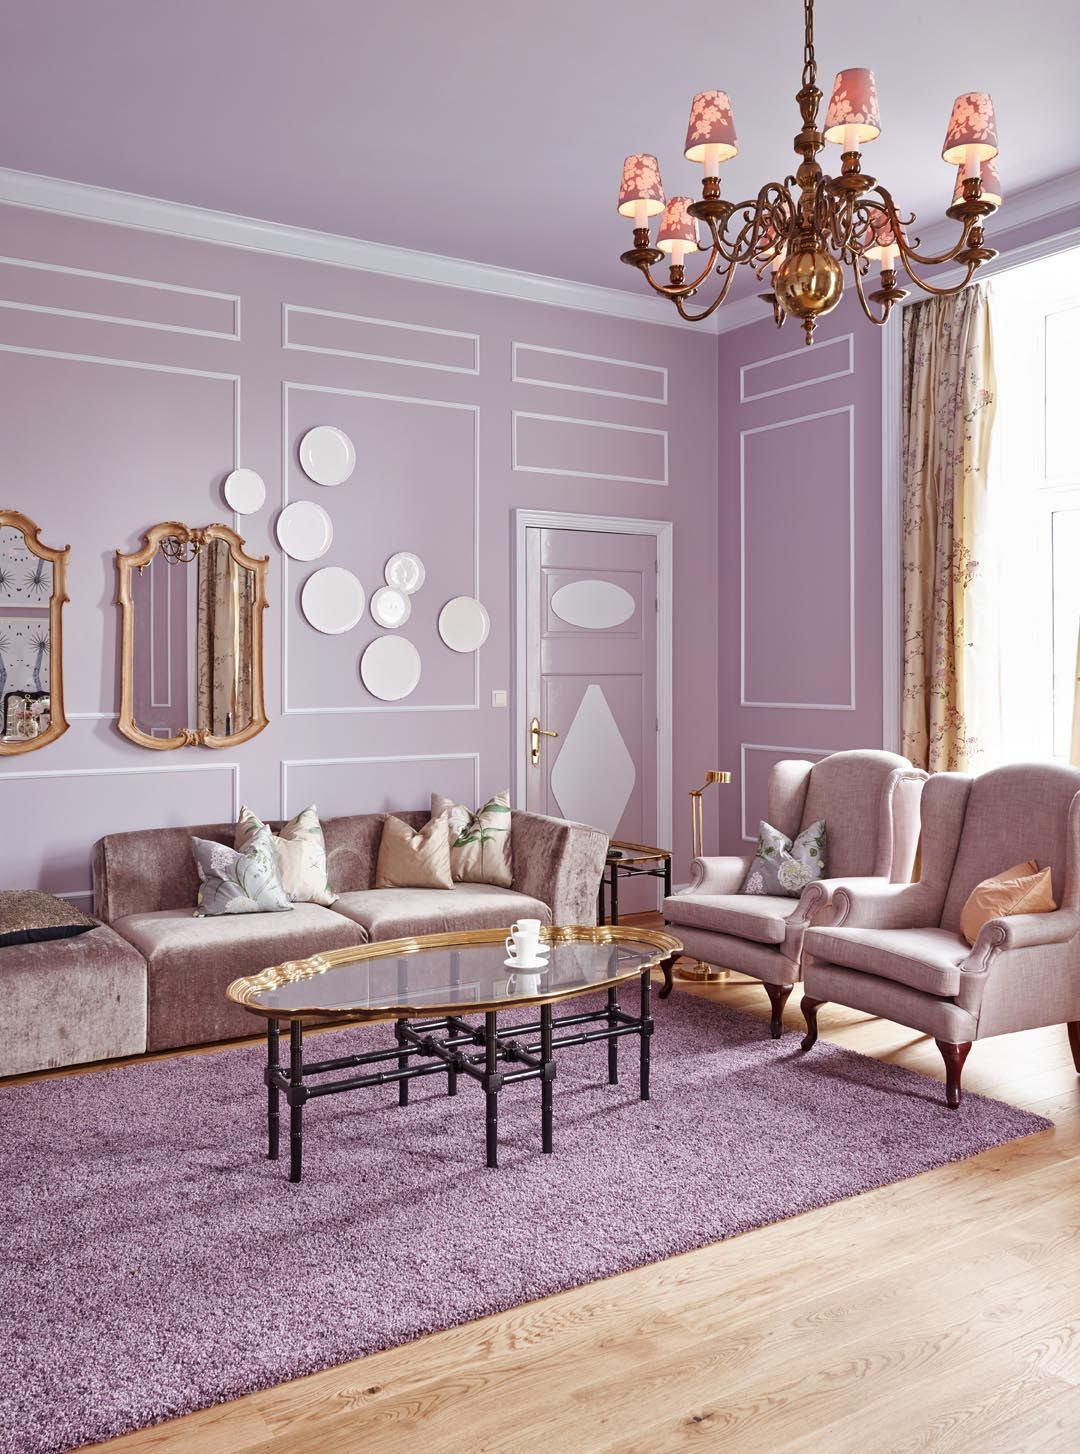 Tags: Purple Living Room Walls, Purple Living Room Color